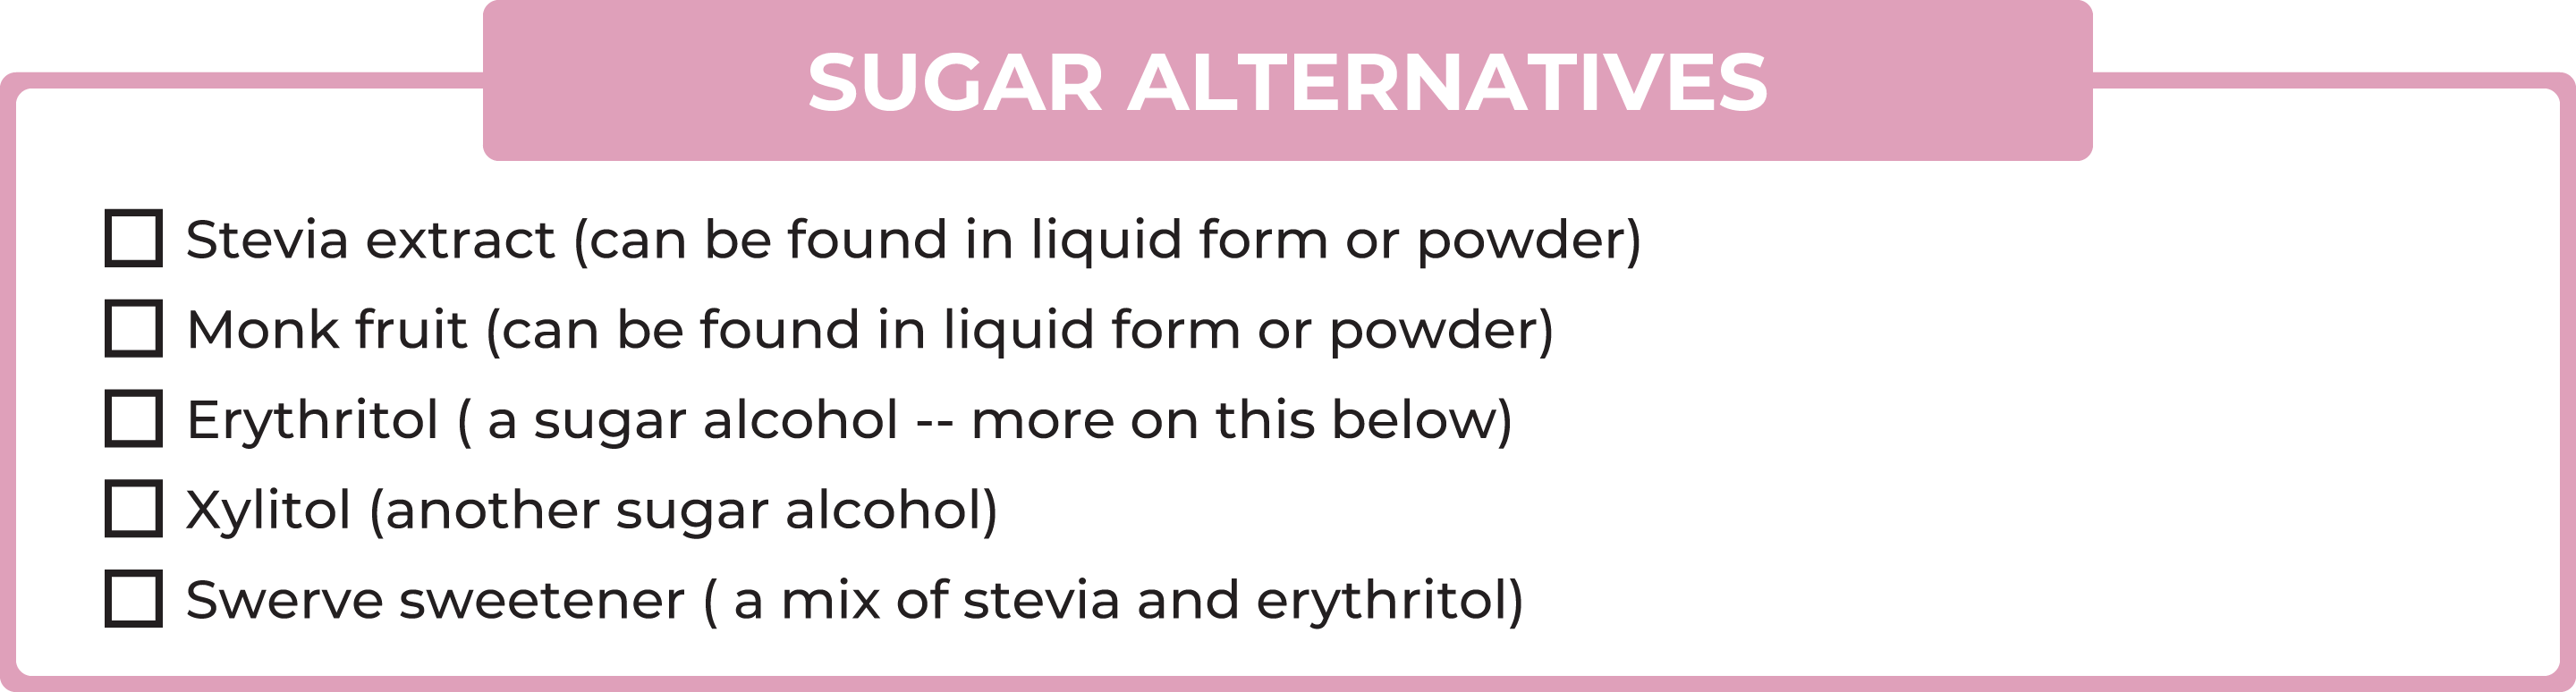 List of no-carb sugar alternatives